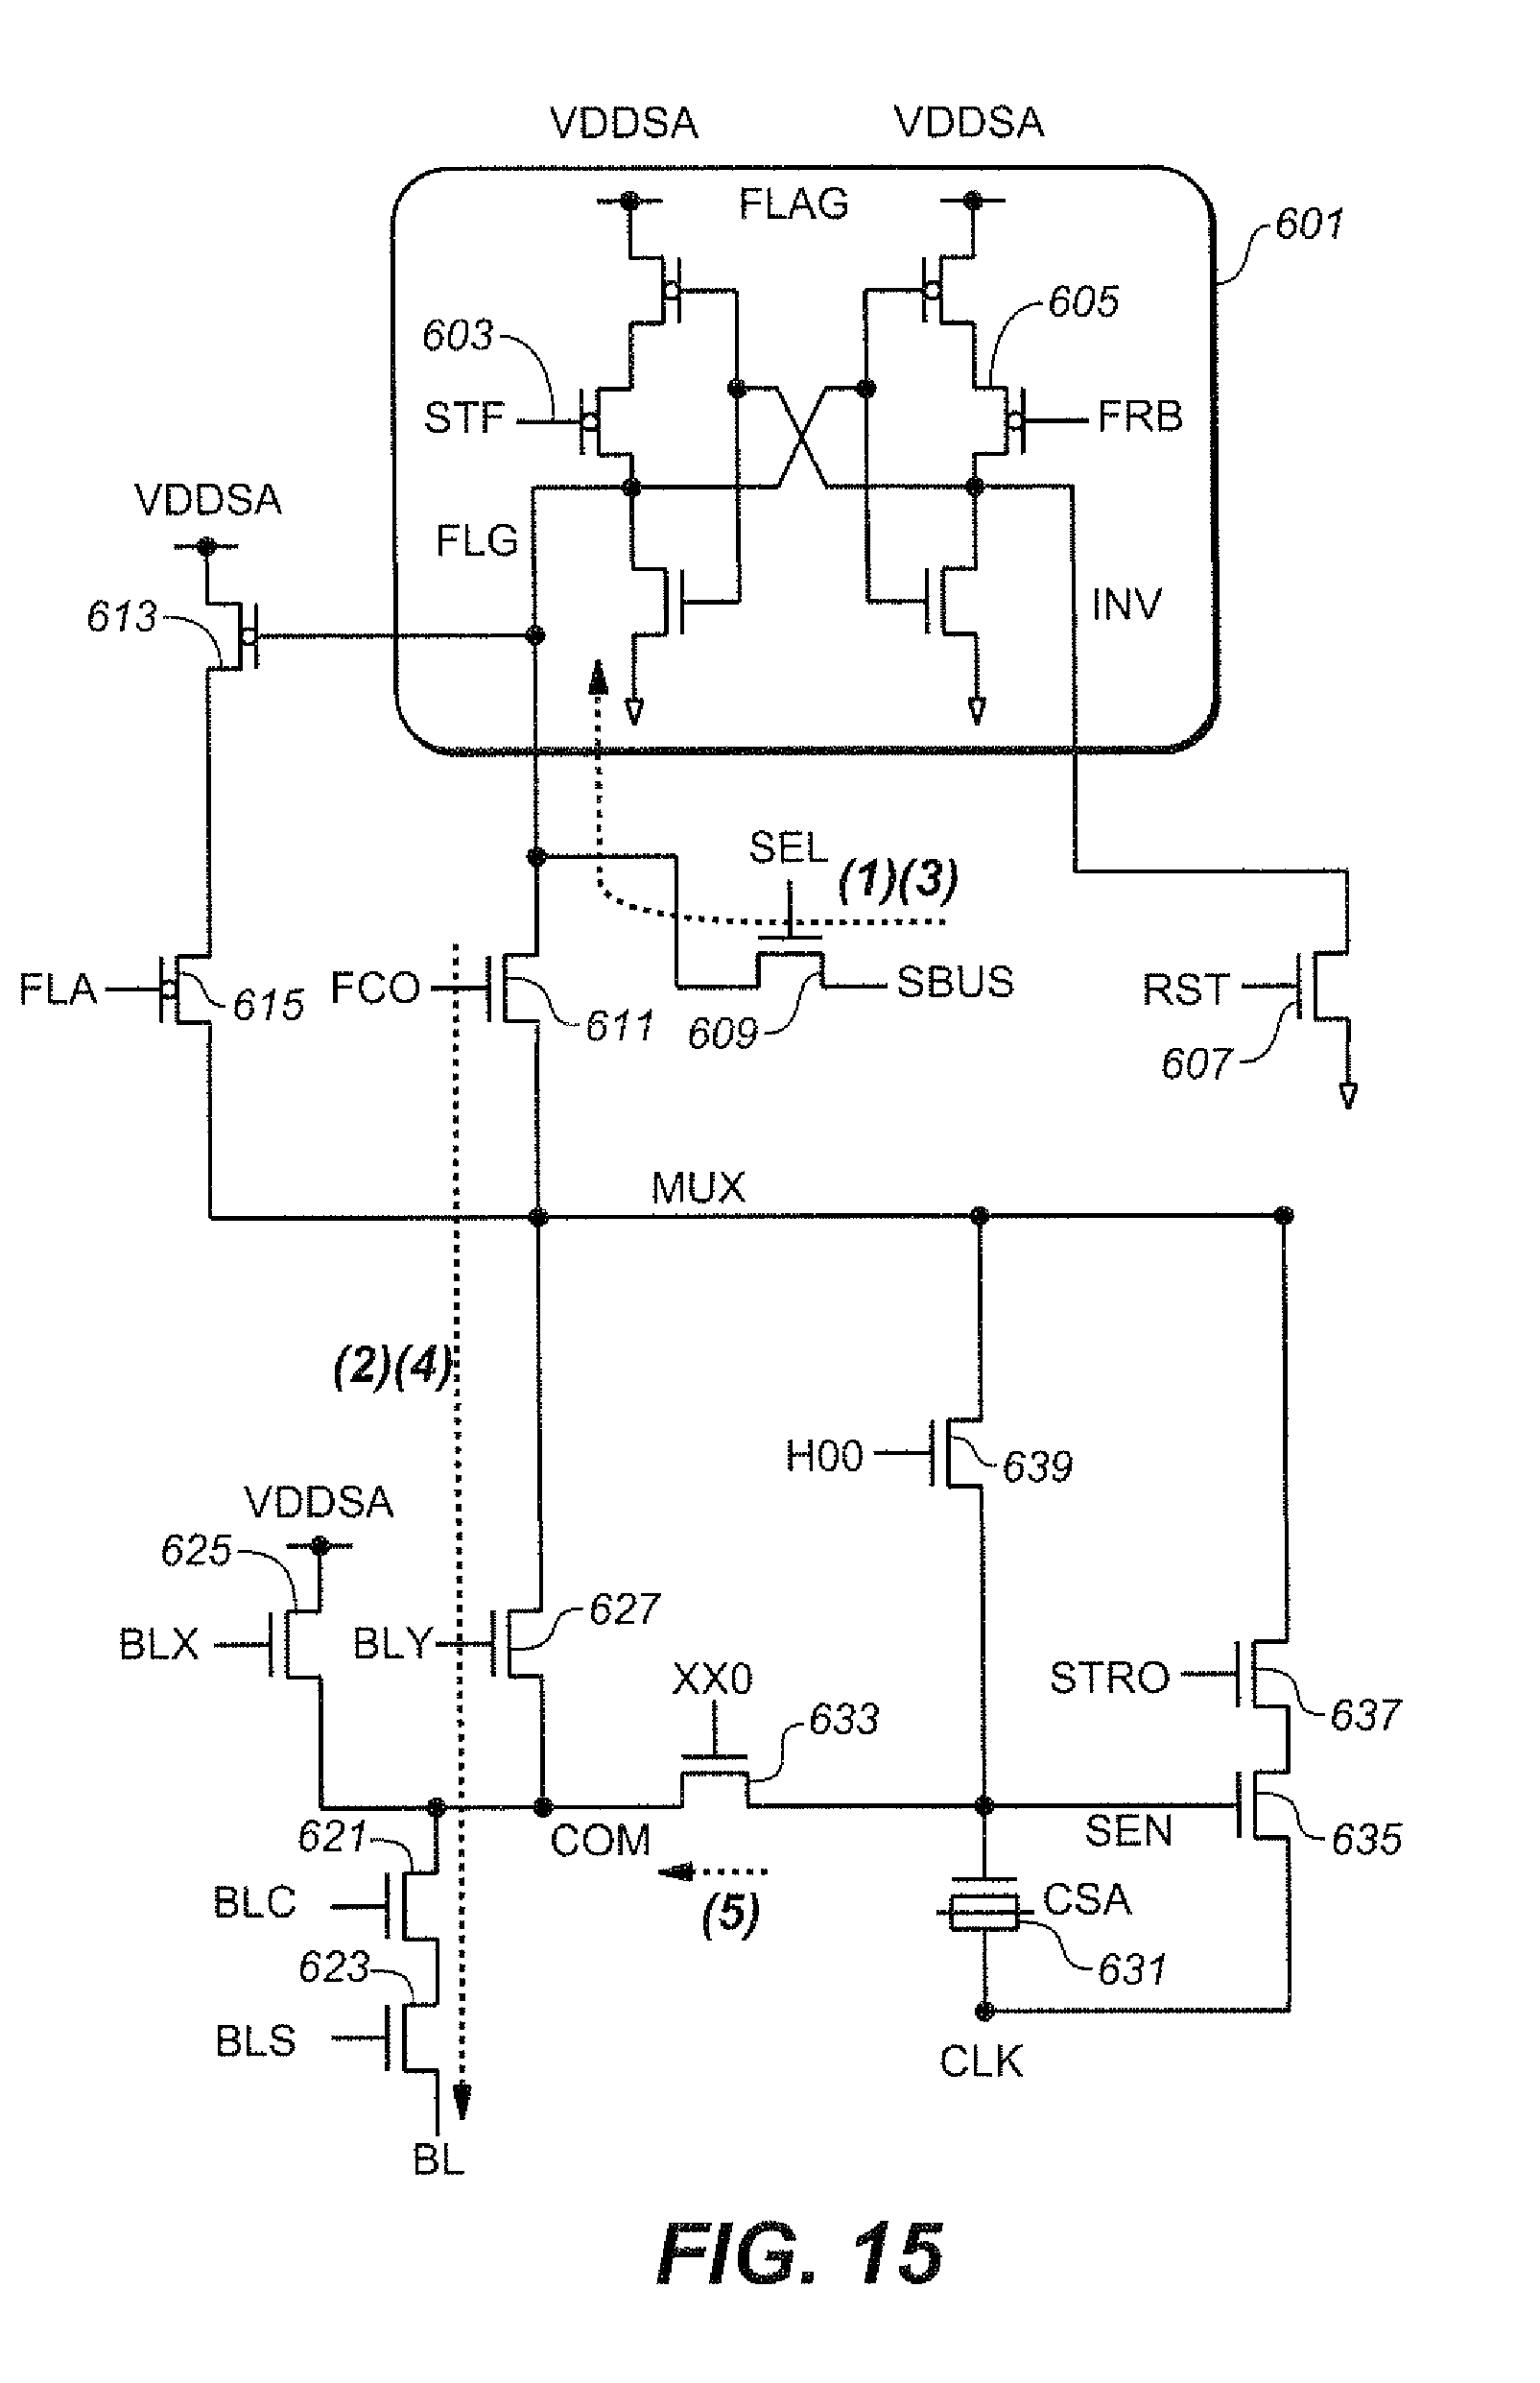 Light Switch Wiring Diagrams Multiple Series moreover US7503671 in addition US8630120 as well US8630120 together with Bs 200 Electric Oven Wiring Diagram. on 2 way switch intermediate